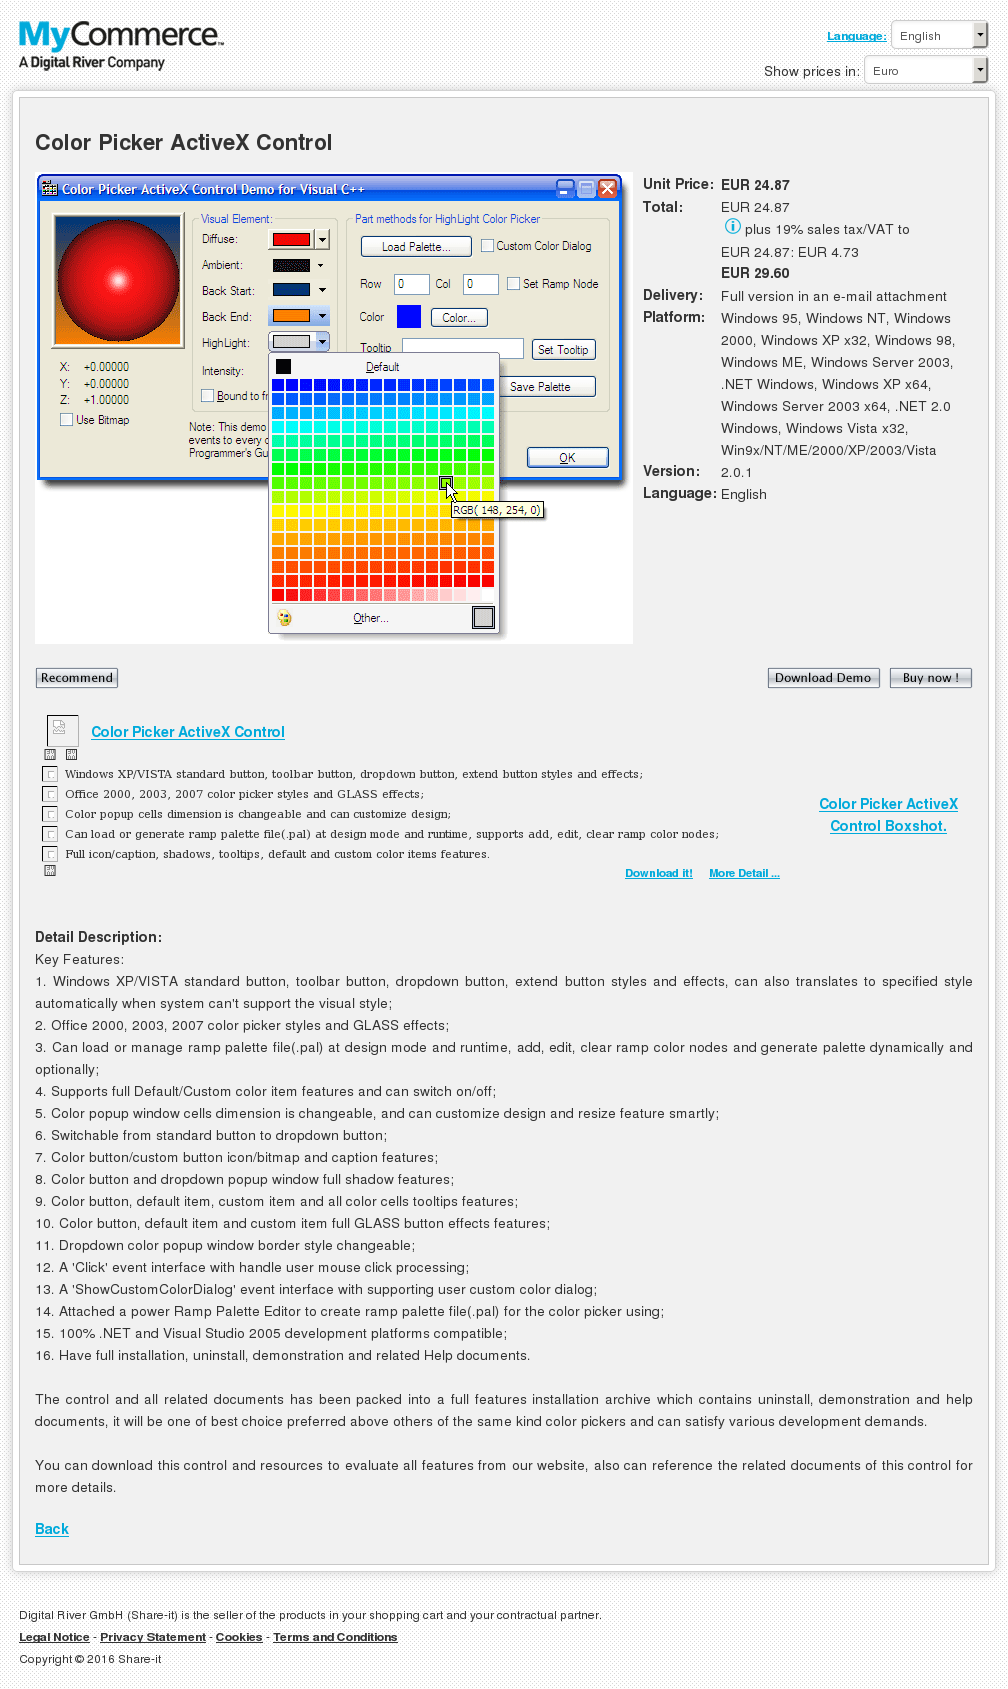 Color Picker Activex Control